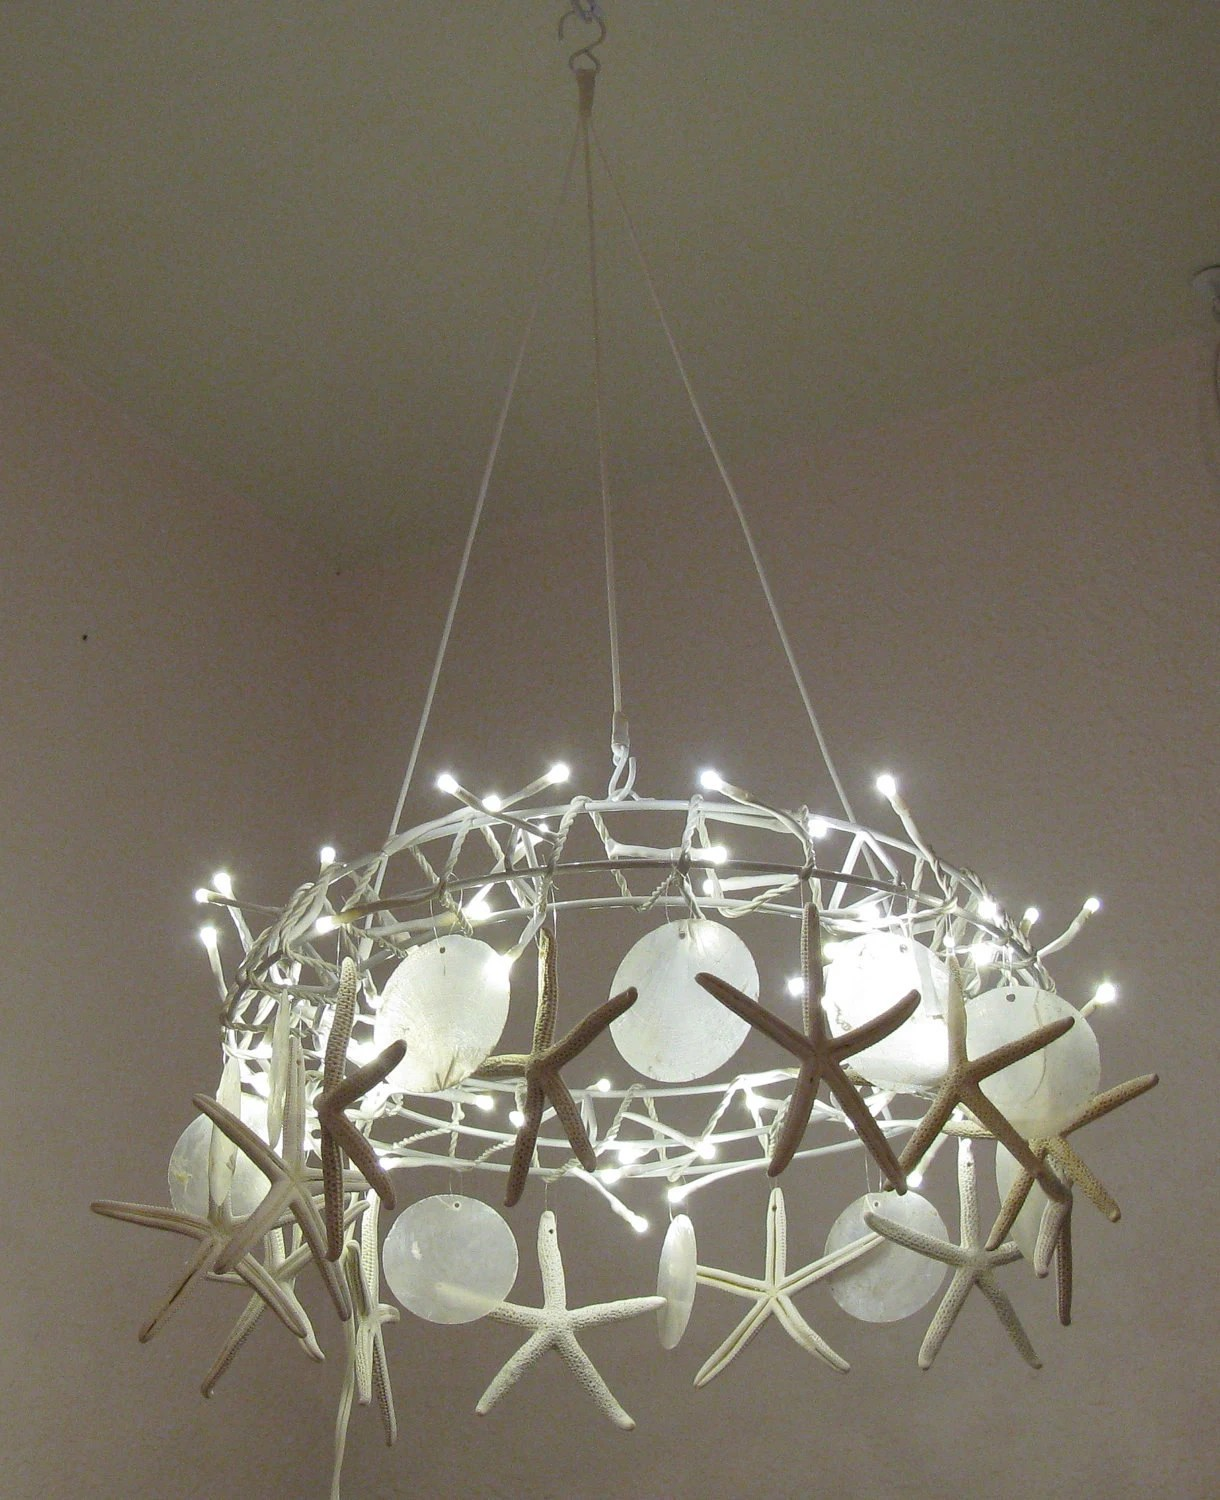 Beach Hanging Lights Handcrafted Starfish Chandelier Tiny White Led Lights